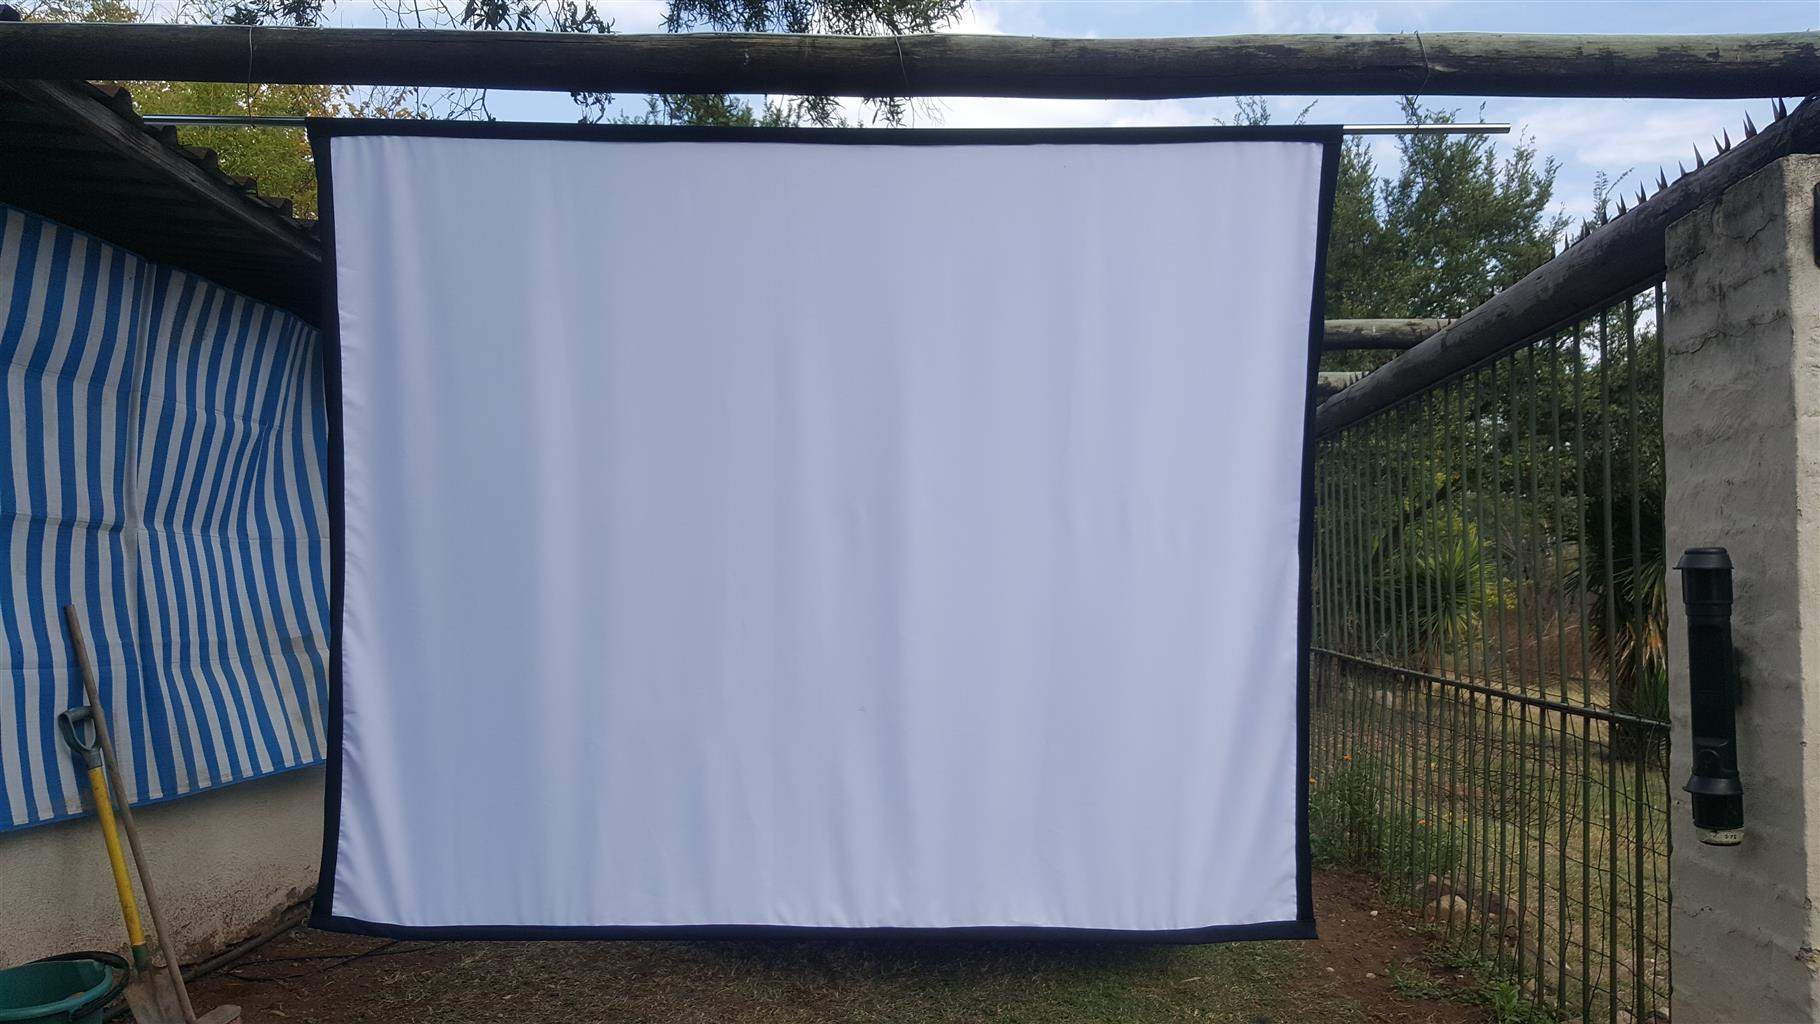 Projectors, Screens and household itemsclearance